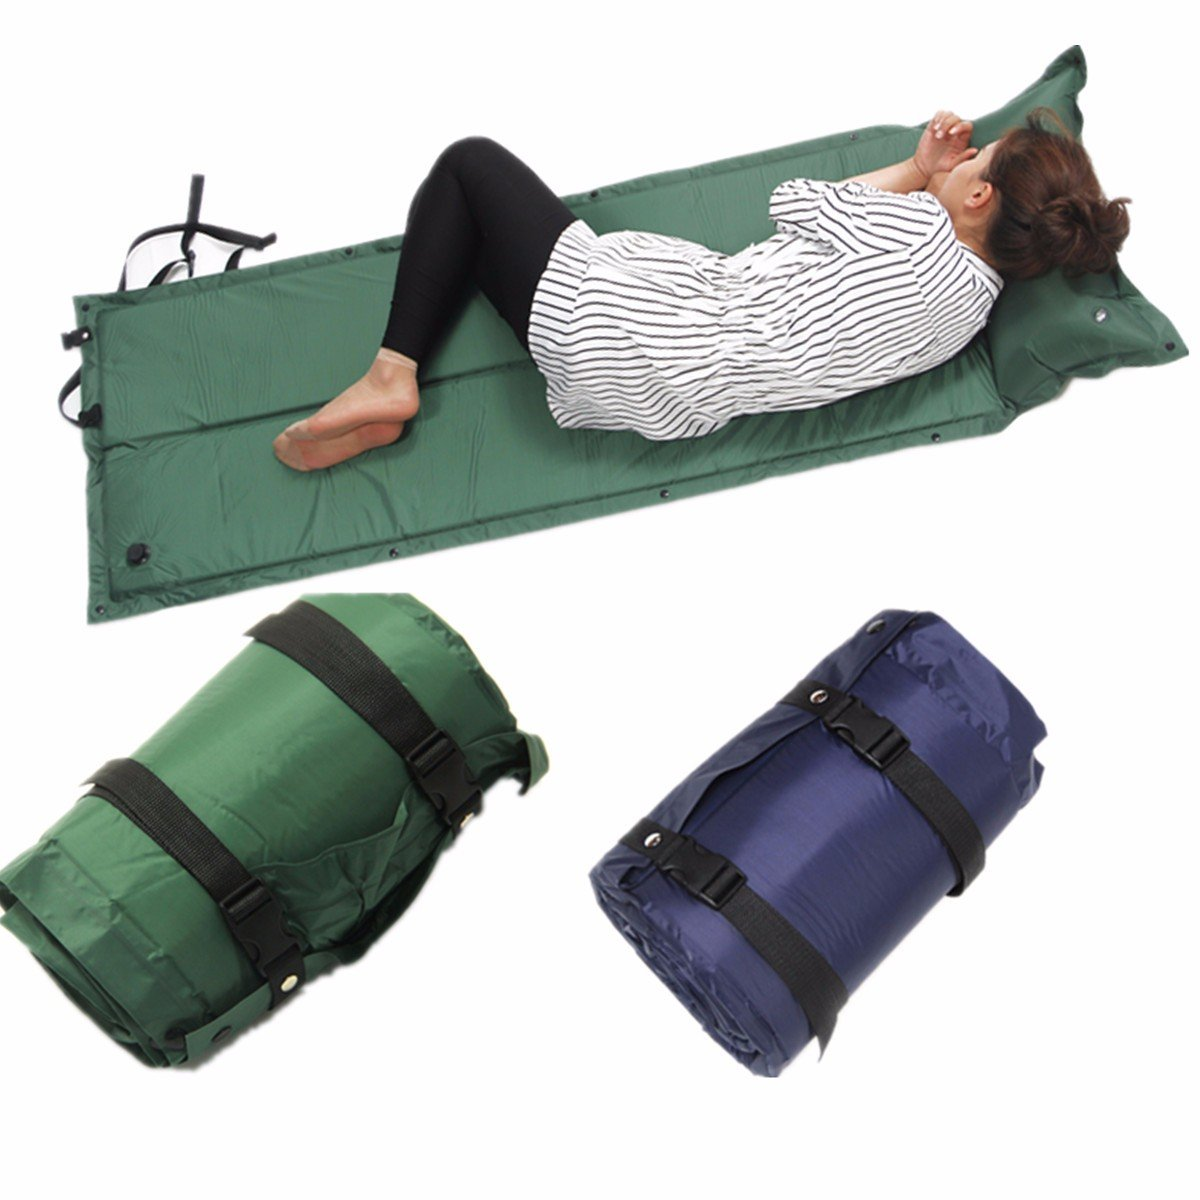 ShopSquare64 IPRee 183x60x2.5cm Auto-Gonflable Air Mattress Camping Tapis de Couchage Anti-humidité